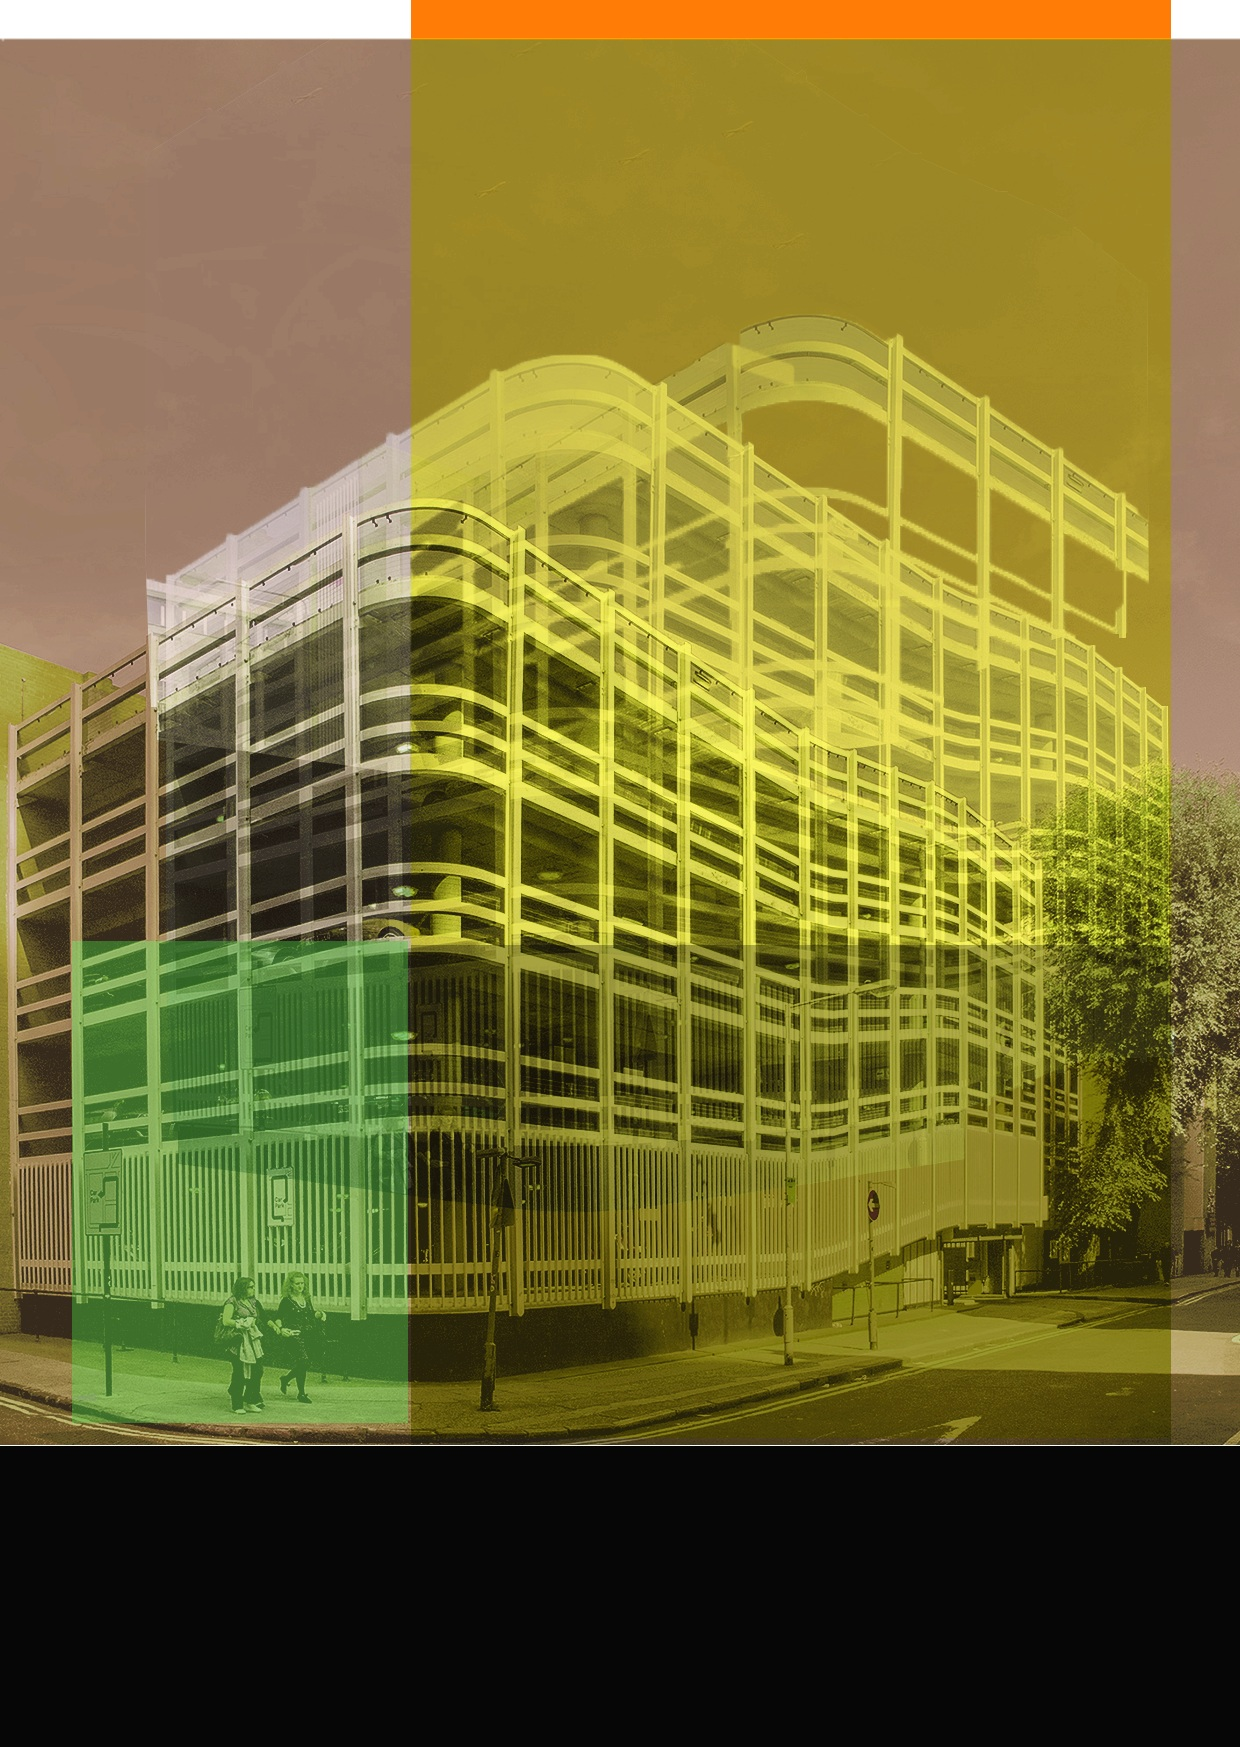 Part of a series of digital prints recording recently demolished car parks in London